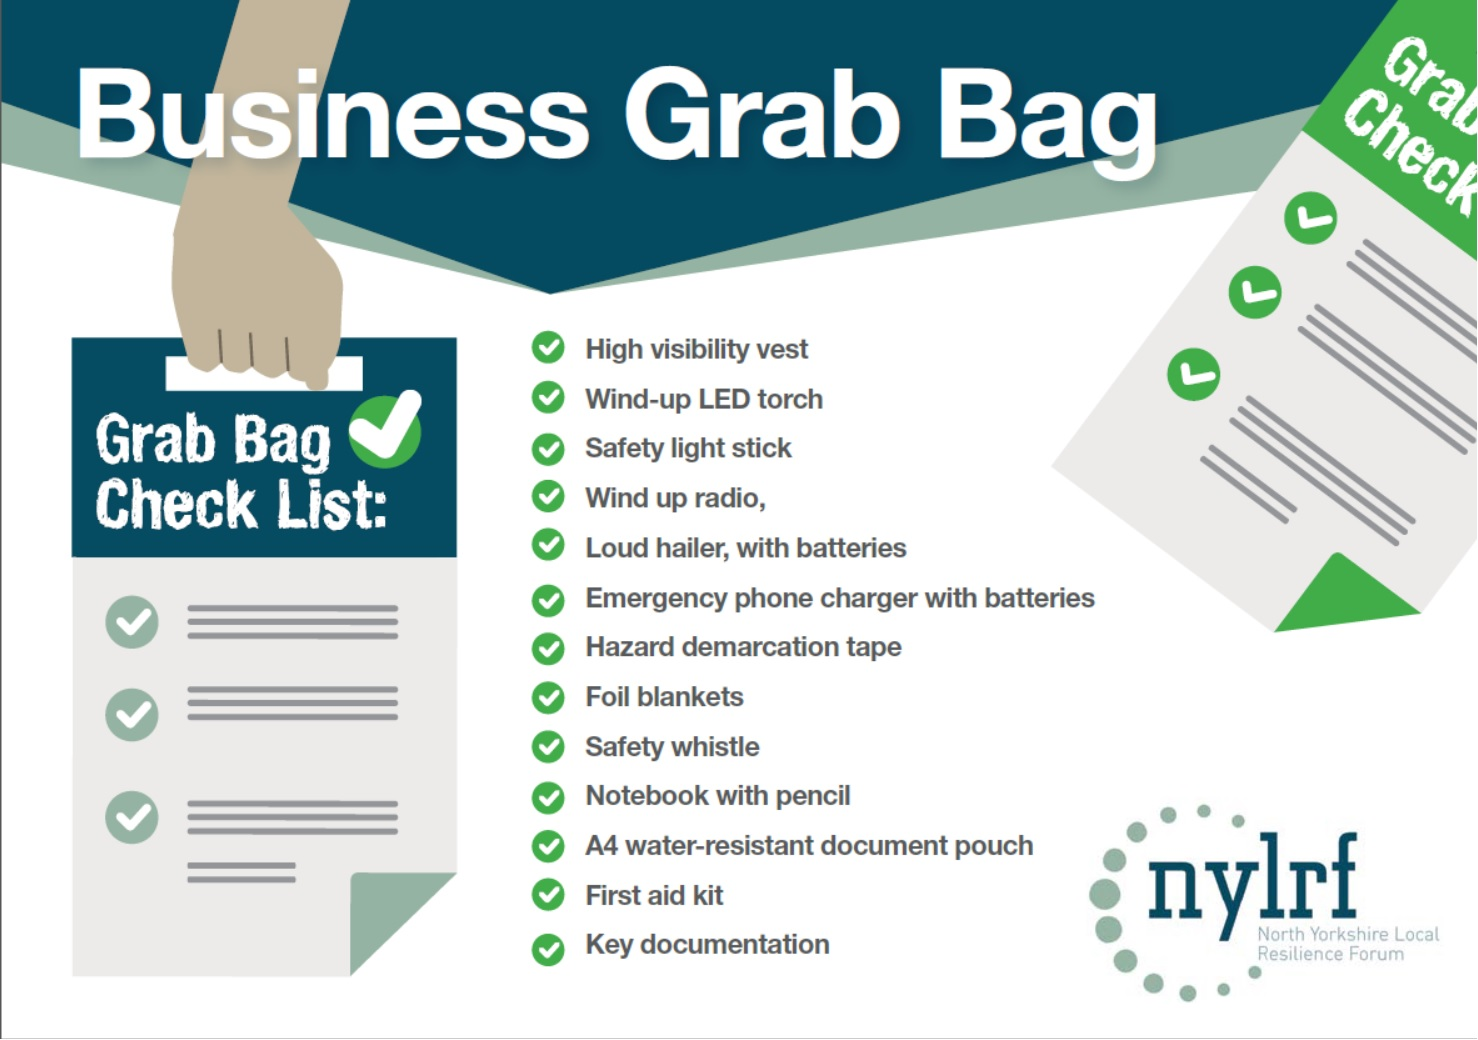 Business Grab Bag